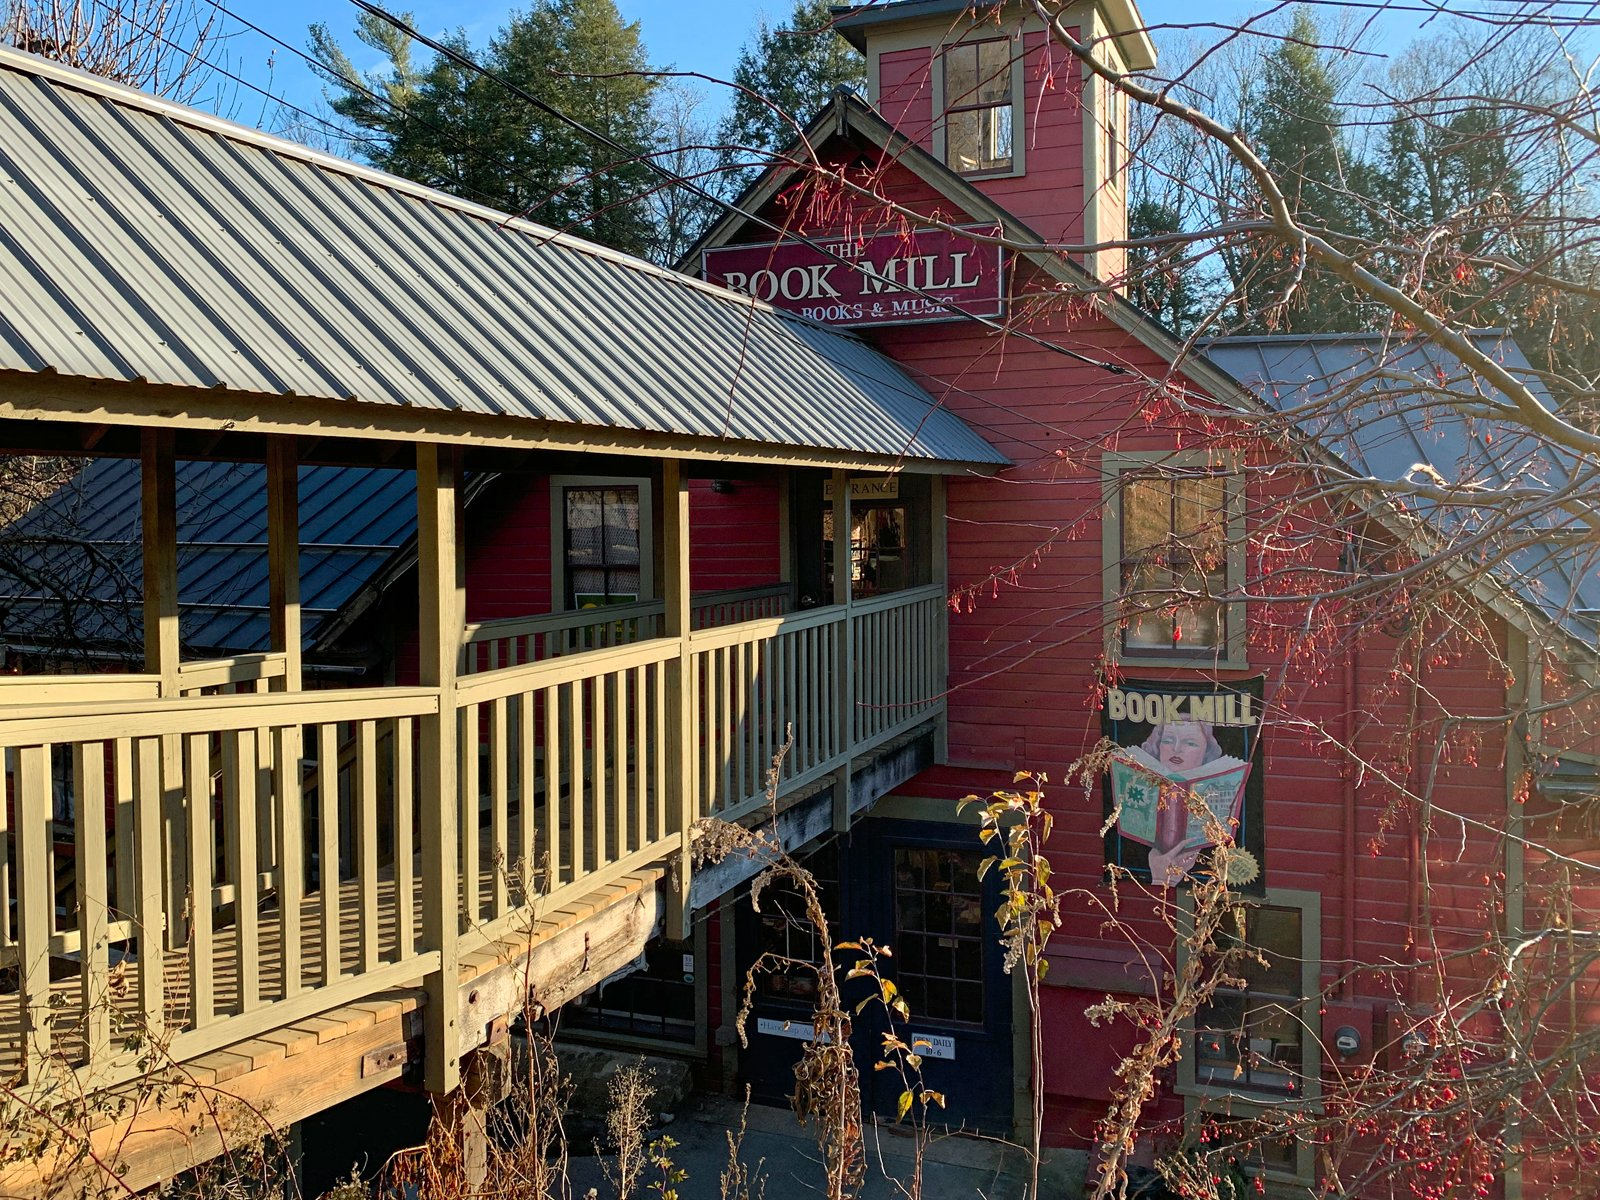 Montague Bookmill in Montague, MA is housed in an old mill building